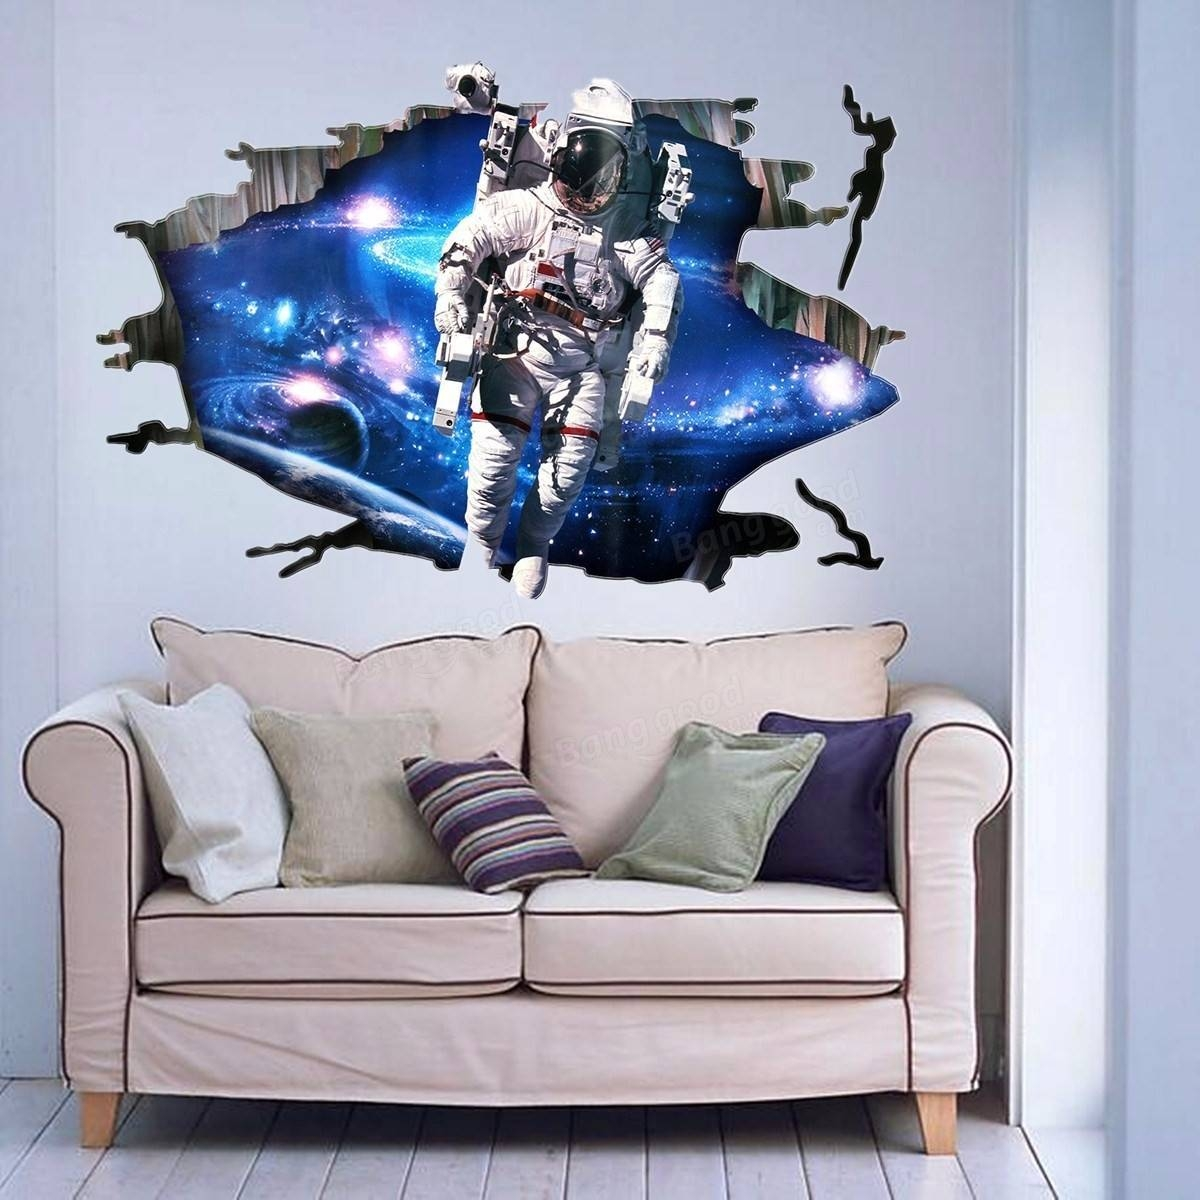 3d Wall Stickers Wallpaper Space Astronauts Decor Kids Room Decal Inside Current Astronaut 3d Wall Art (View 7 of 20)